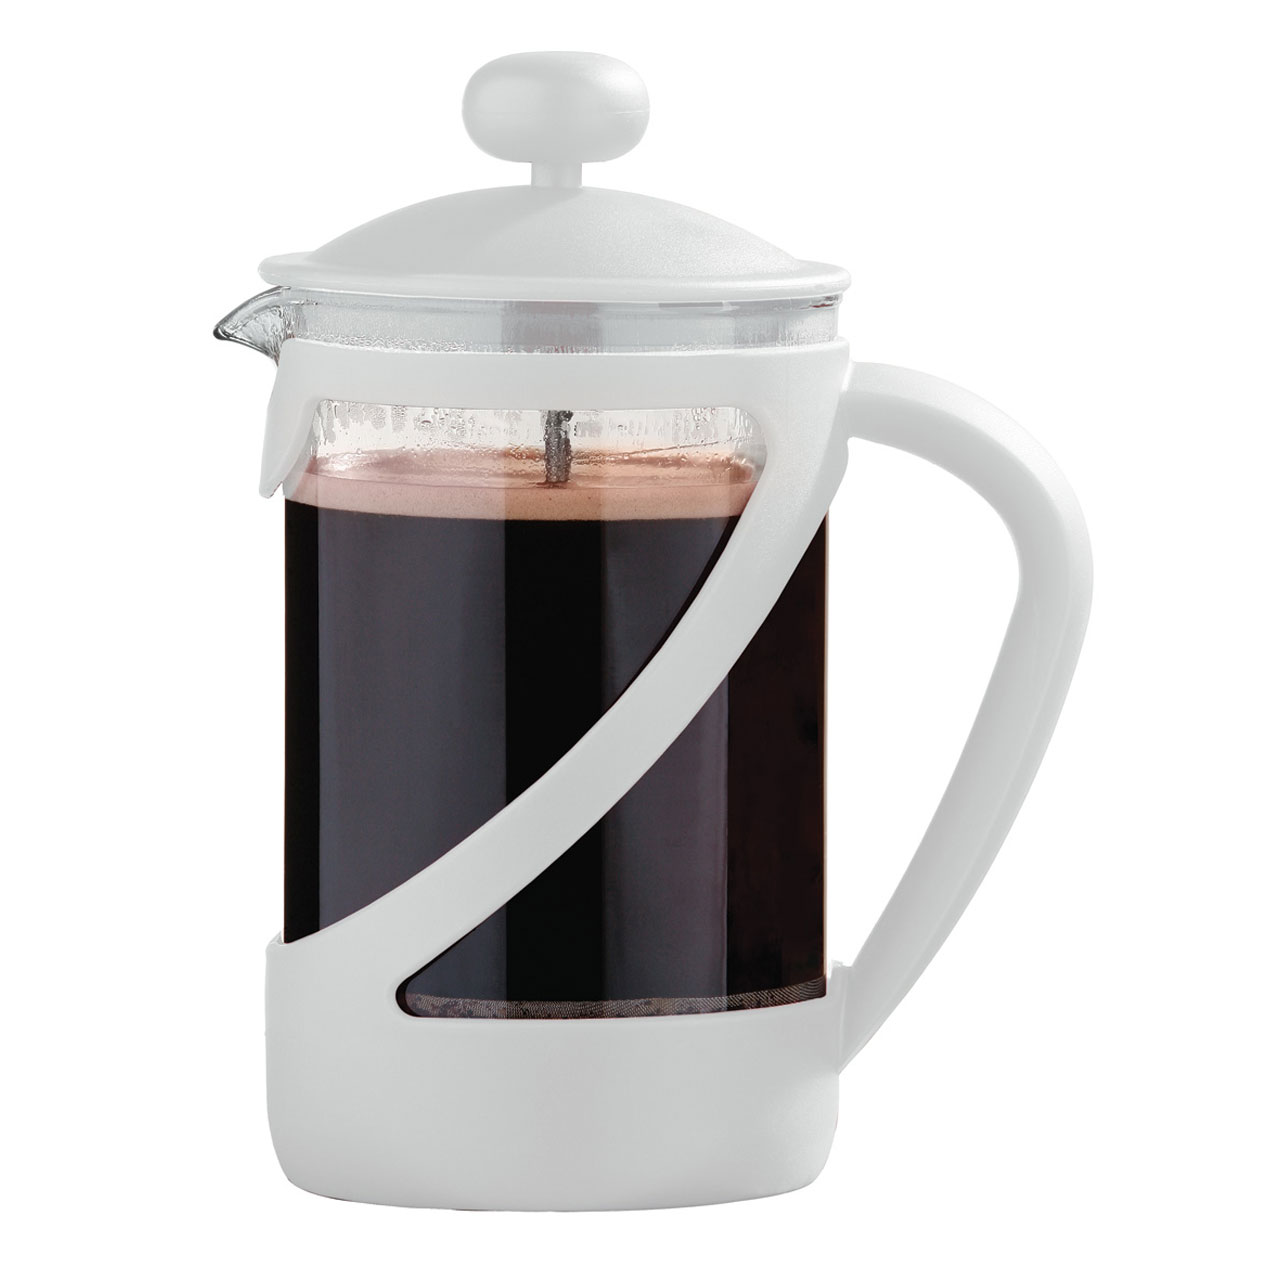 White French Press Coffee Maker : NEW STYLISH KENYA FRENCH PRESS CAFETIERE COFFEE MAKER eBay